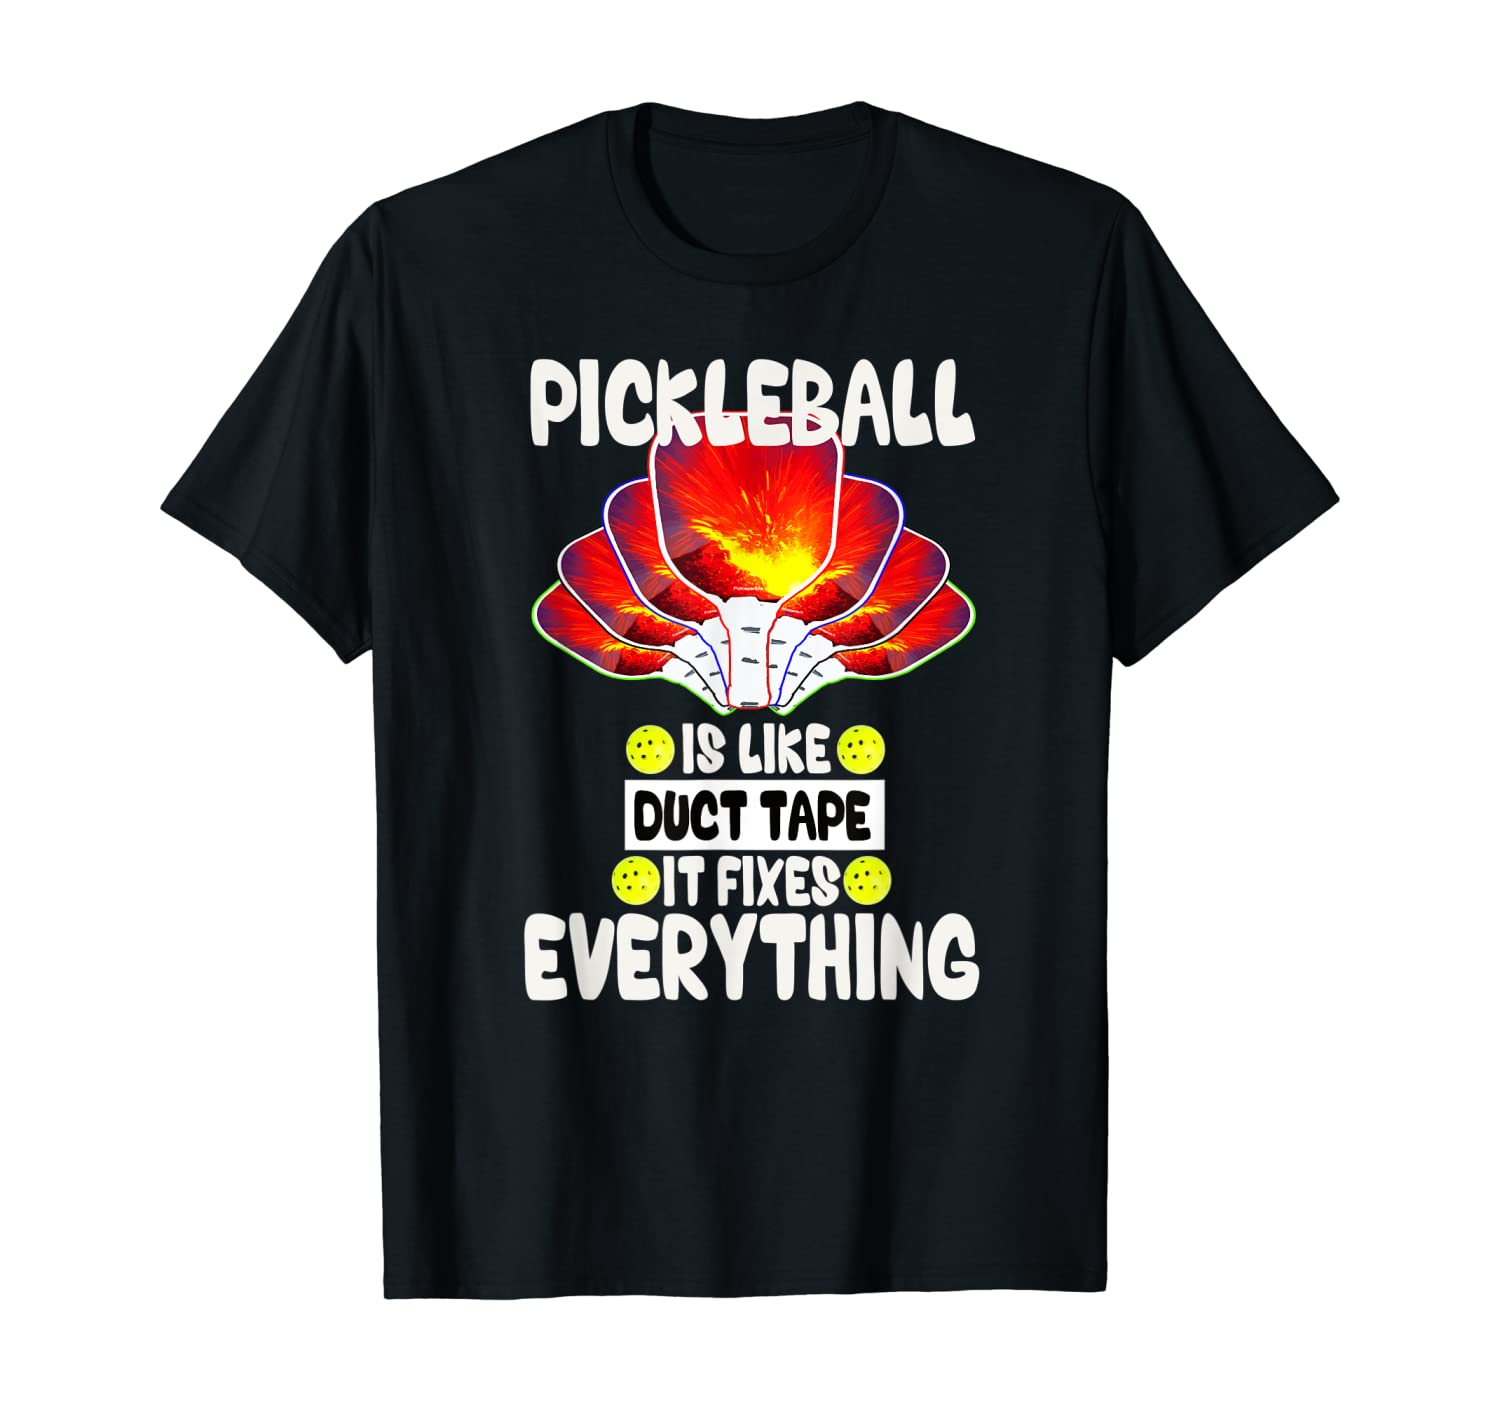 Pickleball is like duct tape it fixes everything T-Shirt